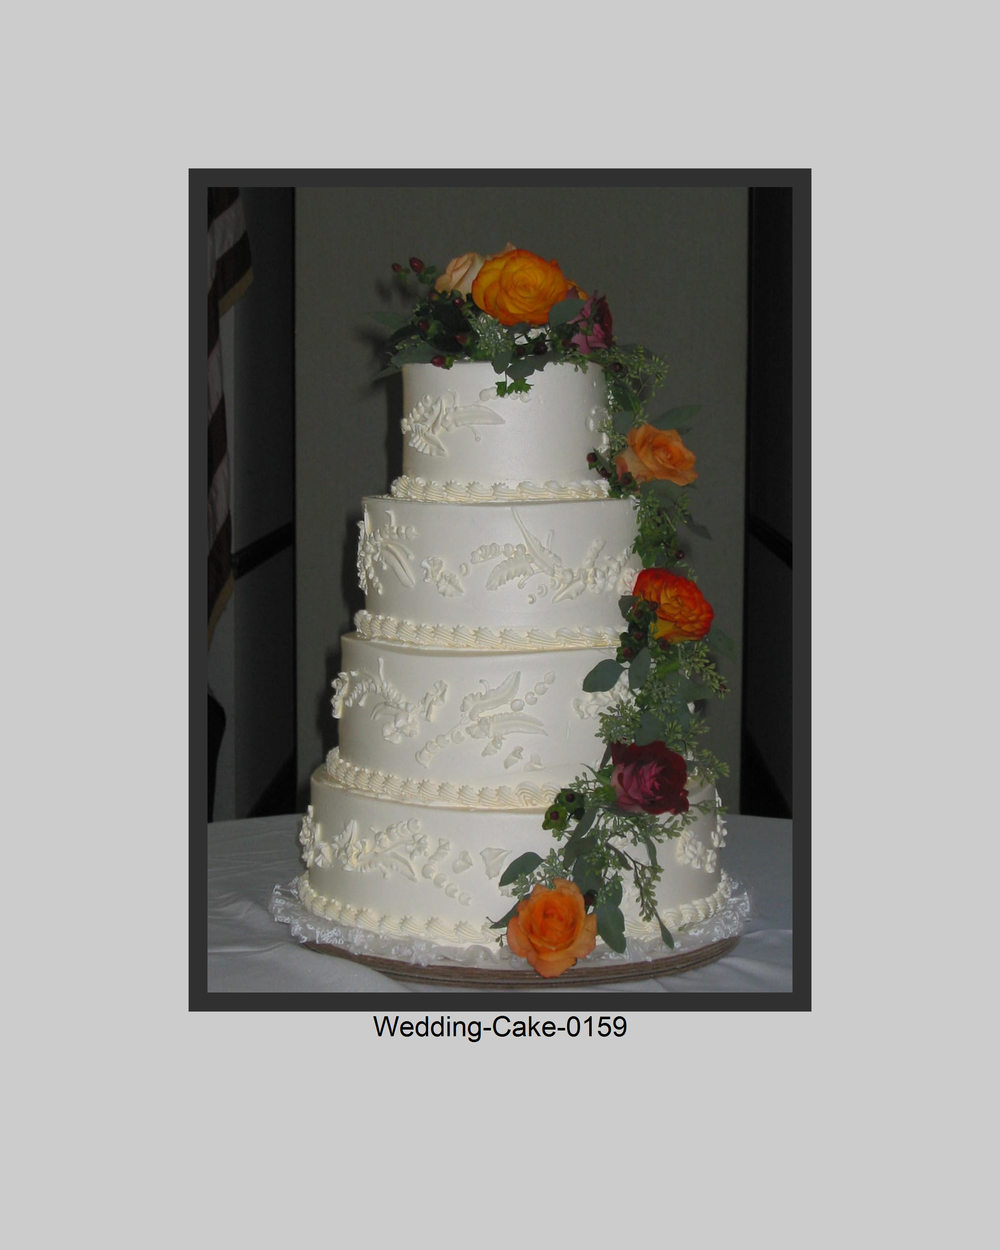 Wedding-Cake-Prints-0159.jpg